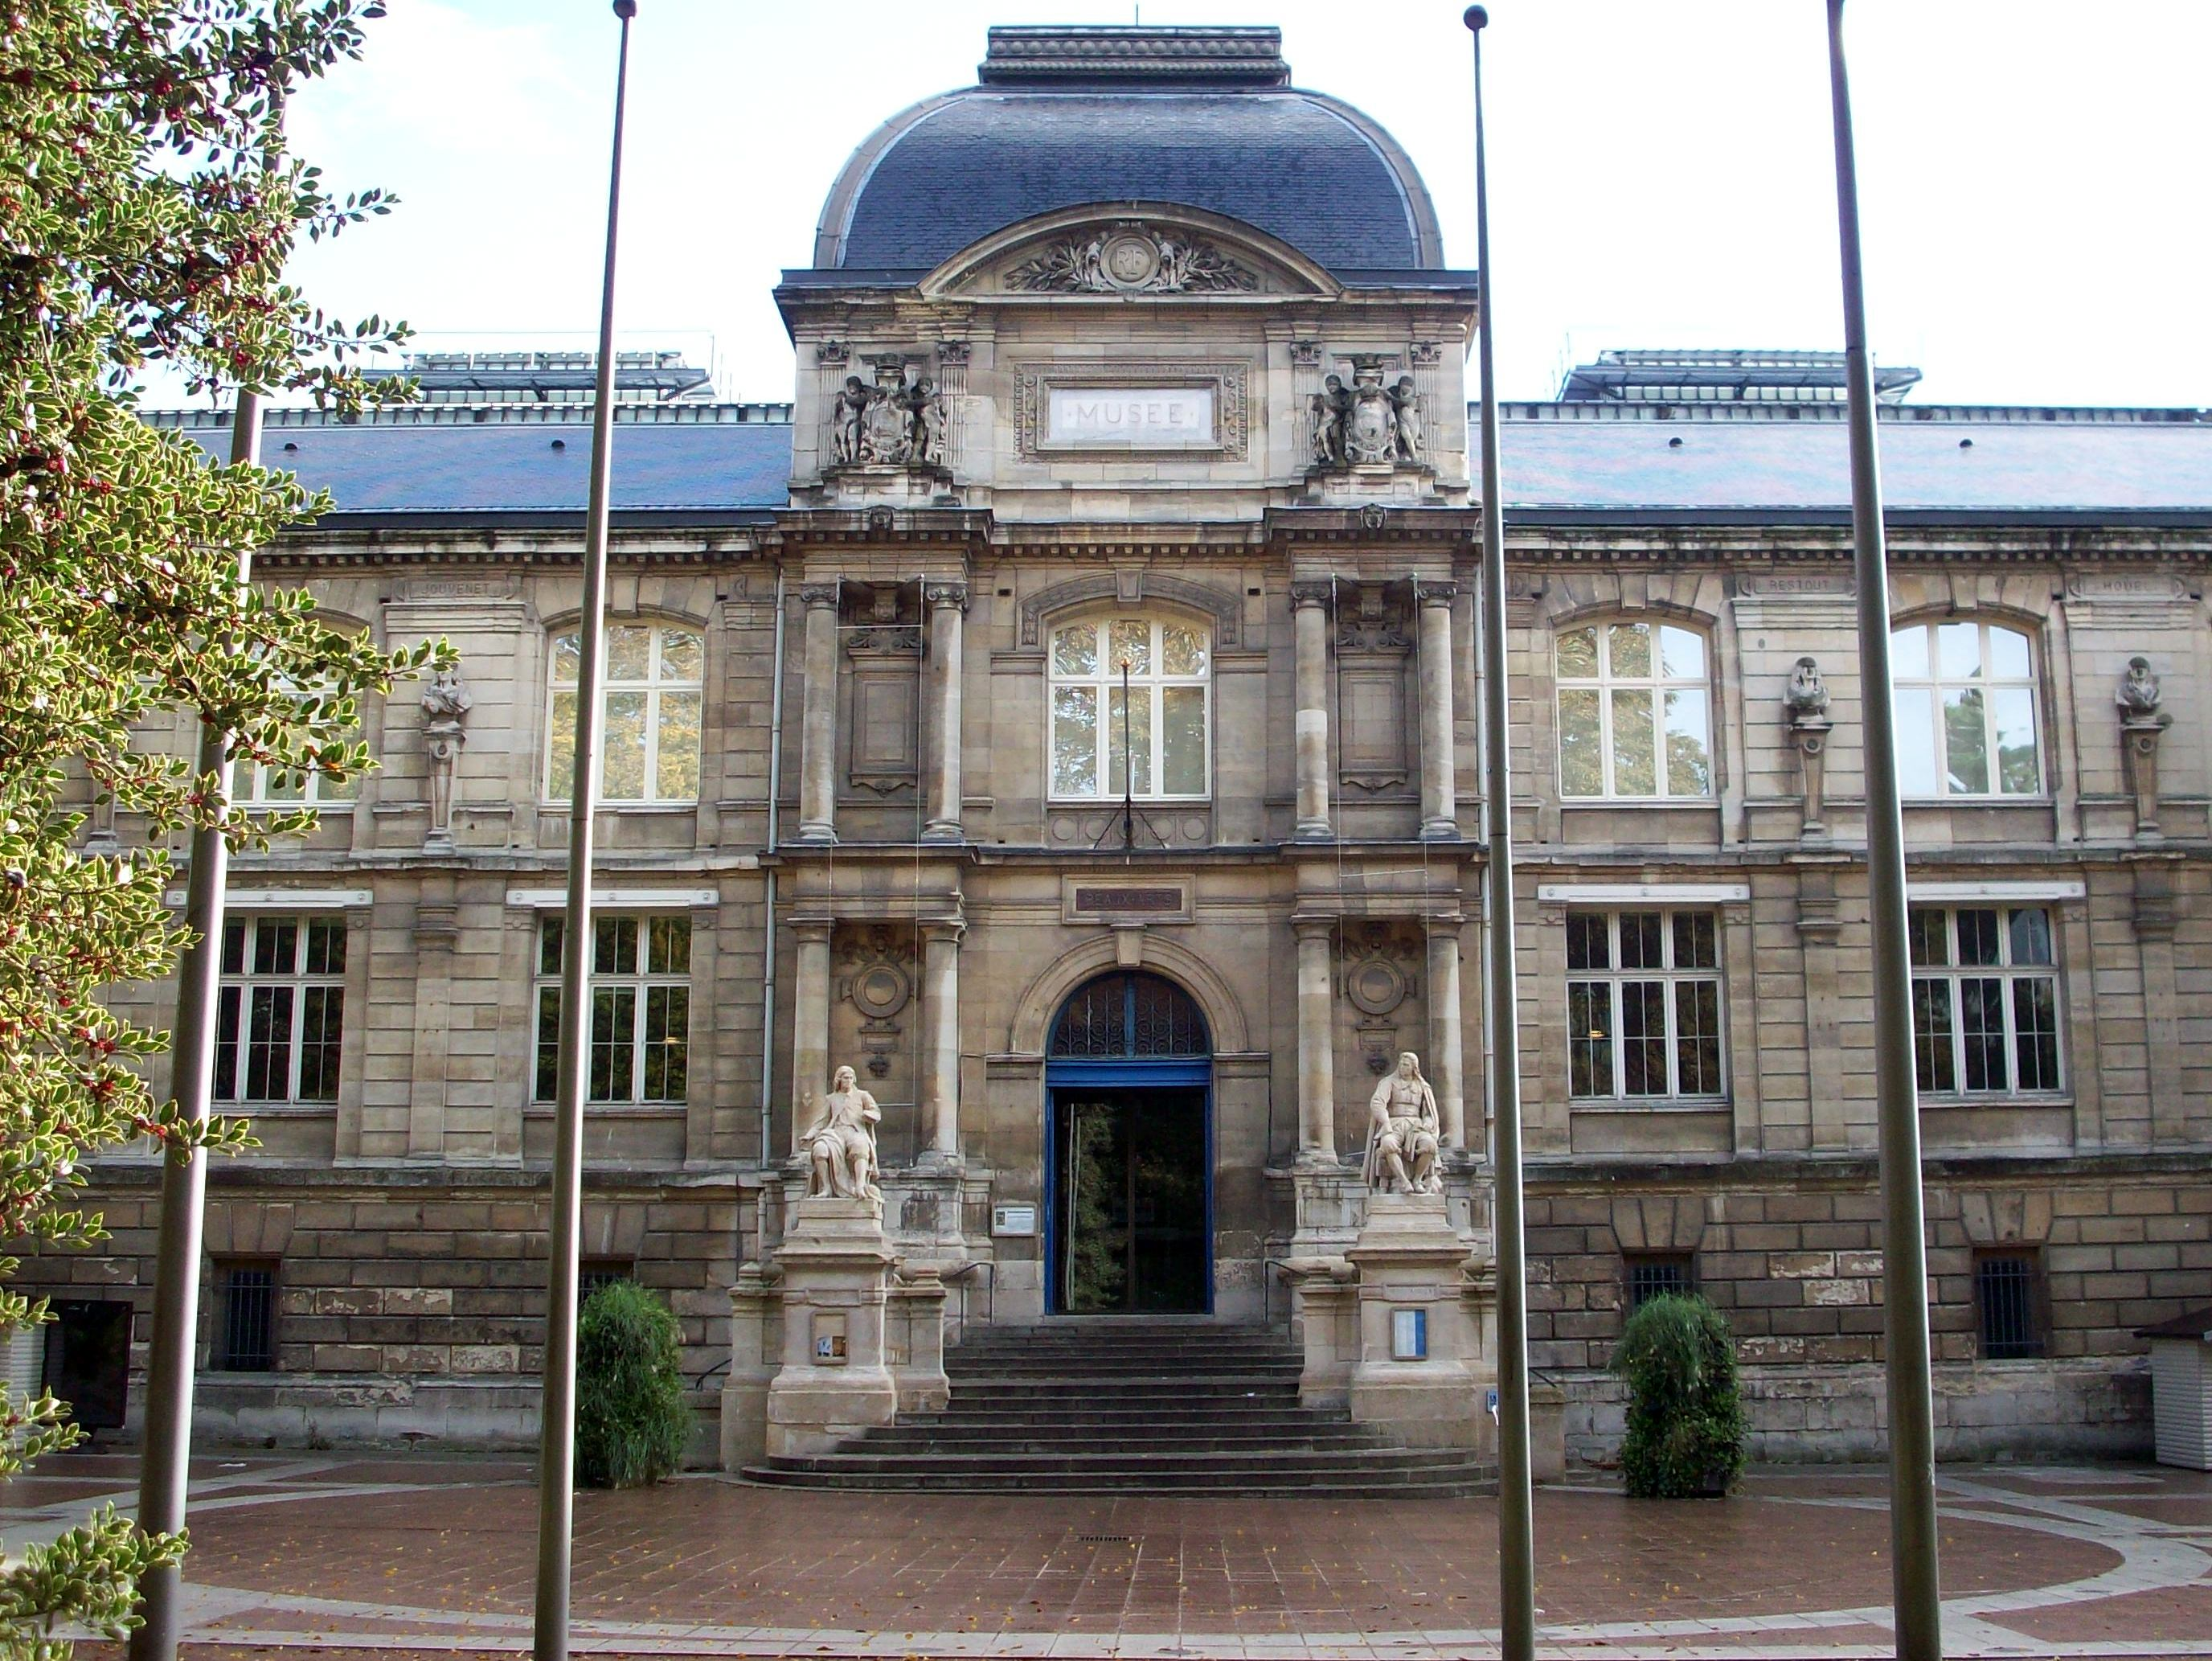 Fine Arts Museum of Rouen © Giogo - licence [CC BY-SA 3.0] from Wikimedia Commons